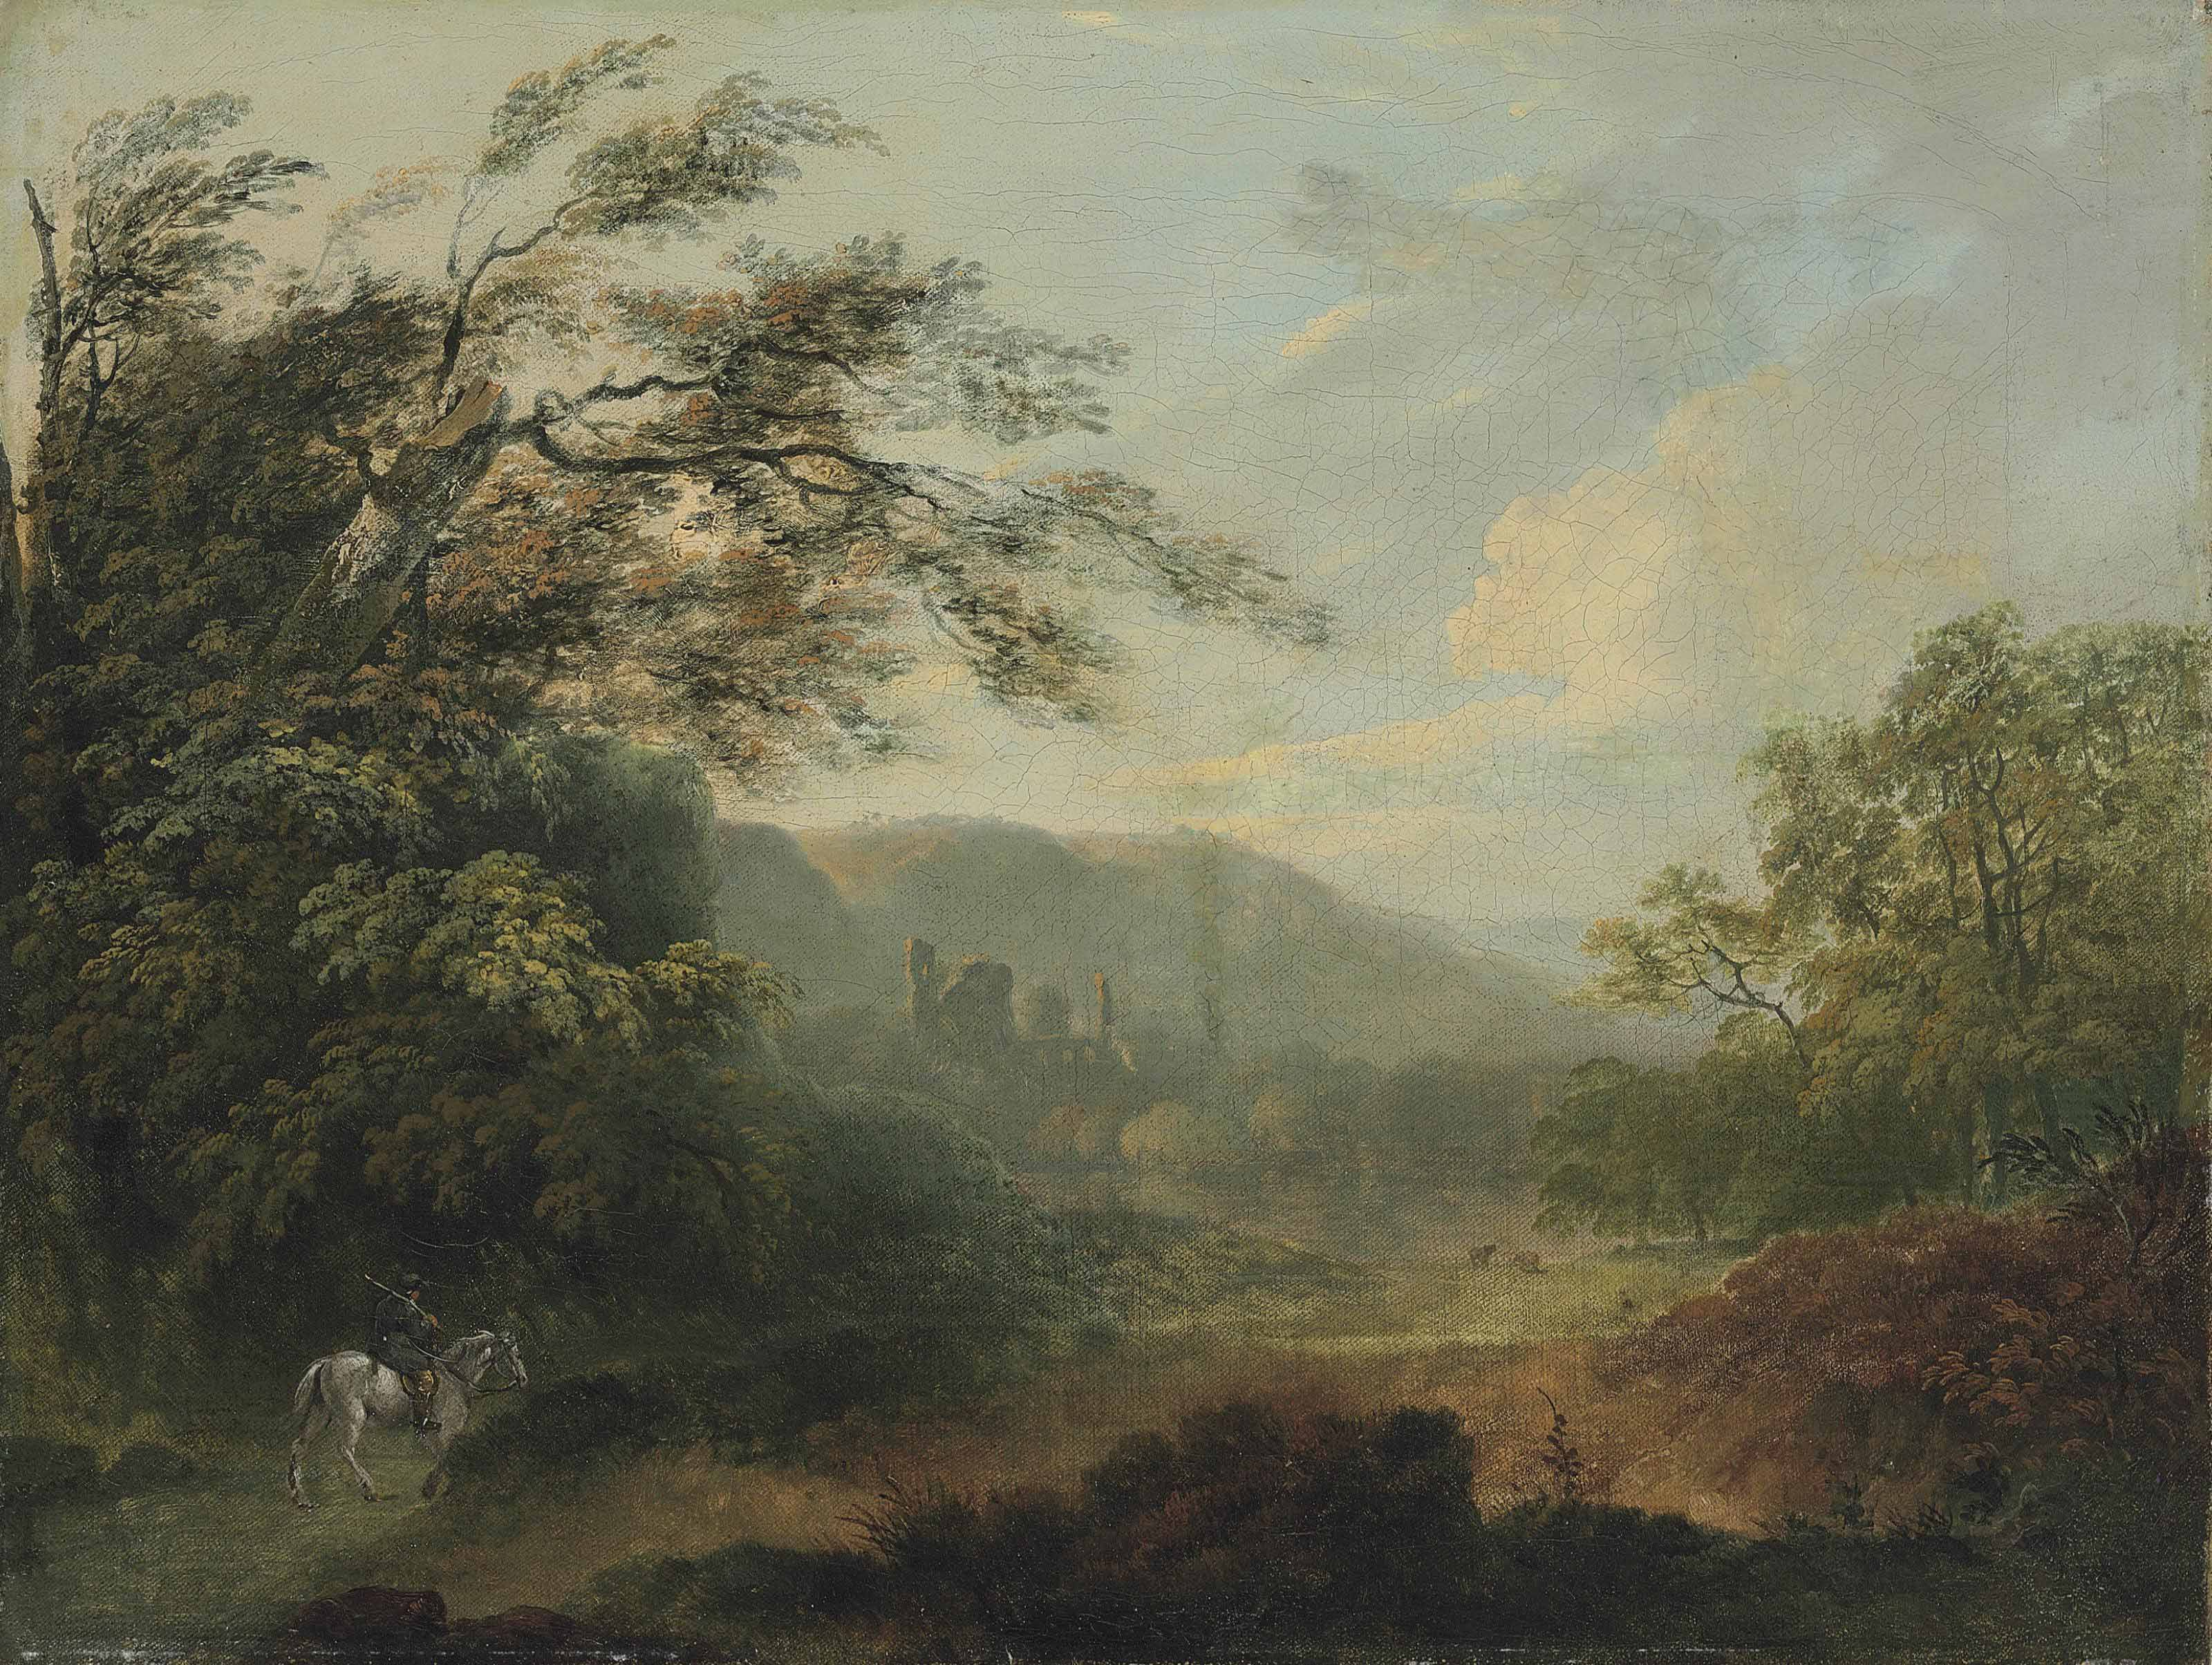 Landscape with a traveler on horseback and ruins in the distance